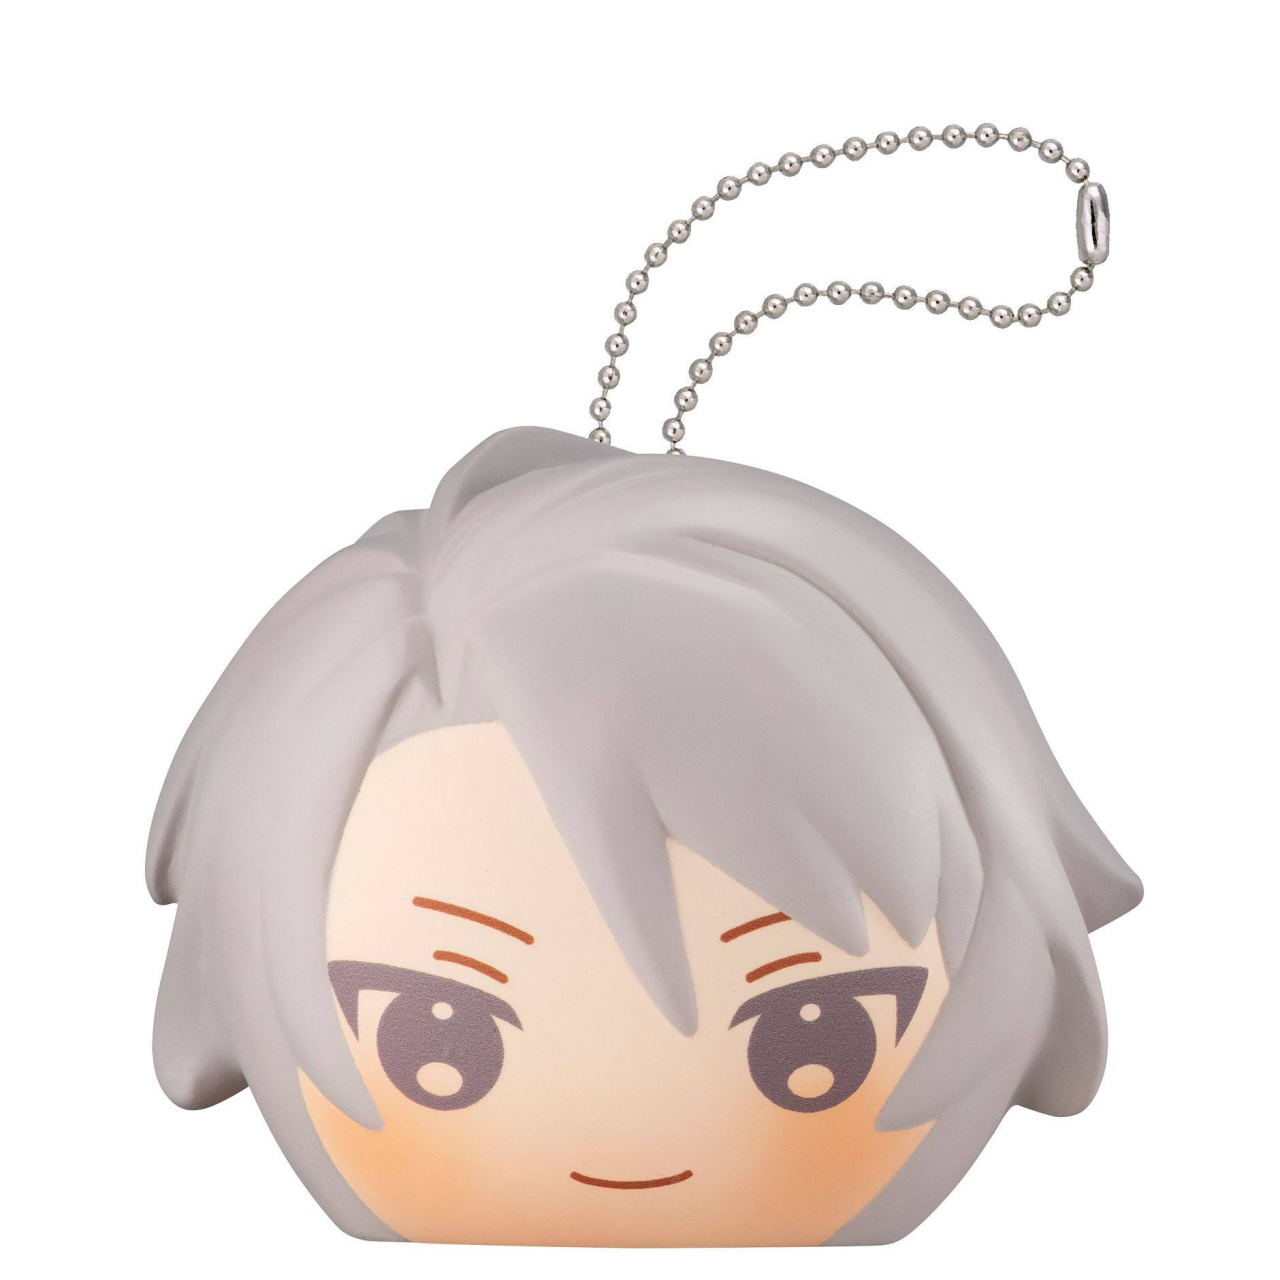 Idolish7 Fluffy Squeeze Bread Anti-Stress Figures 8 cm Assortment Trigger & Re:vale (6)